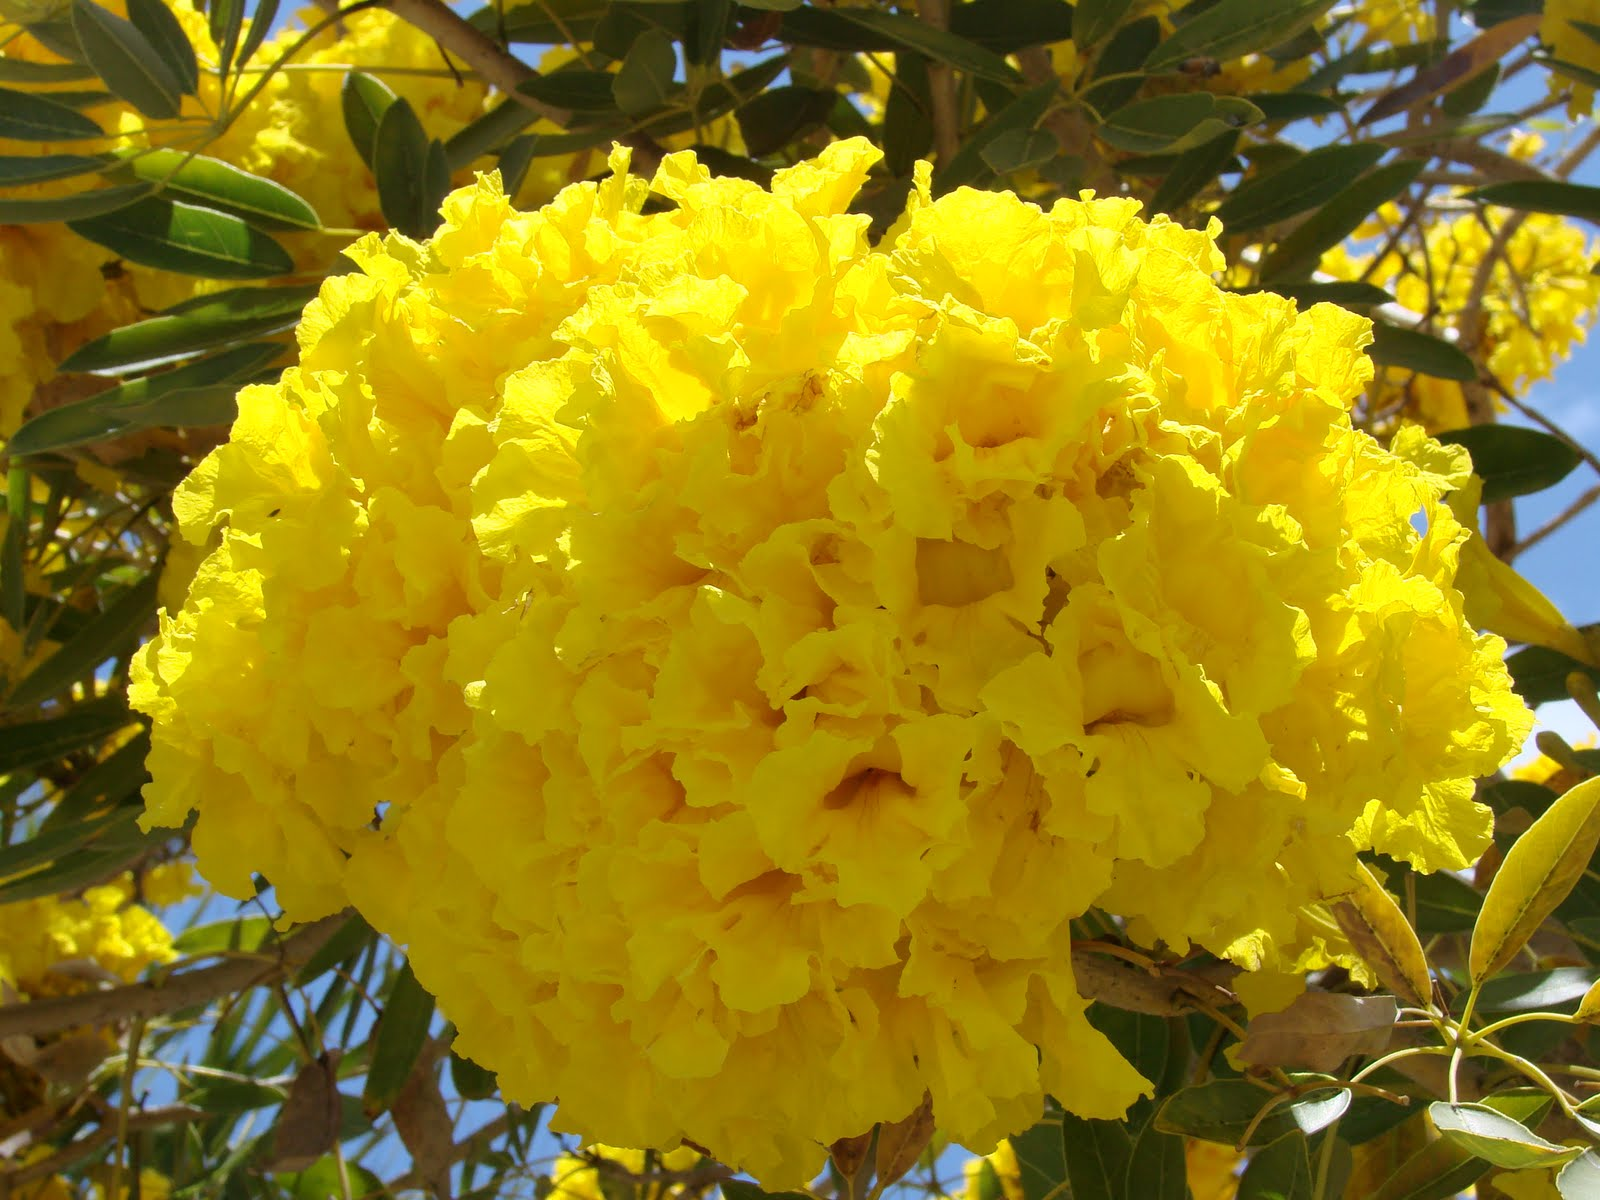 Angelil adventures what 39 s that neon yellow tree - Trees that bloom yellow flowers ...